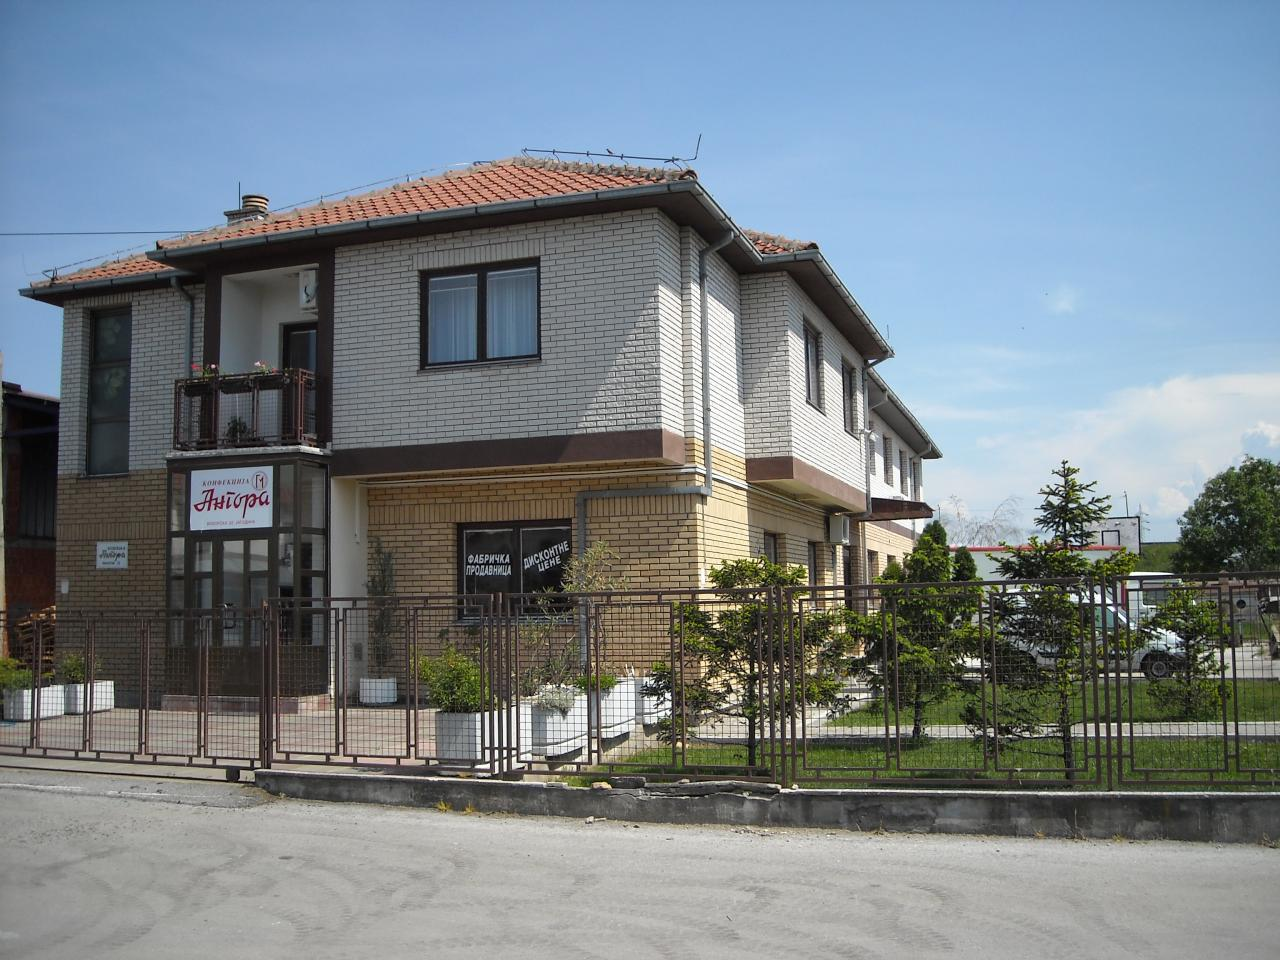 ANGORA Restaurant equipment Jagodina